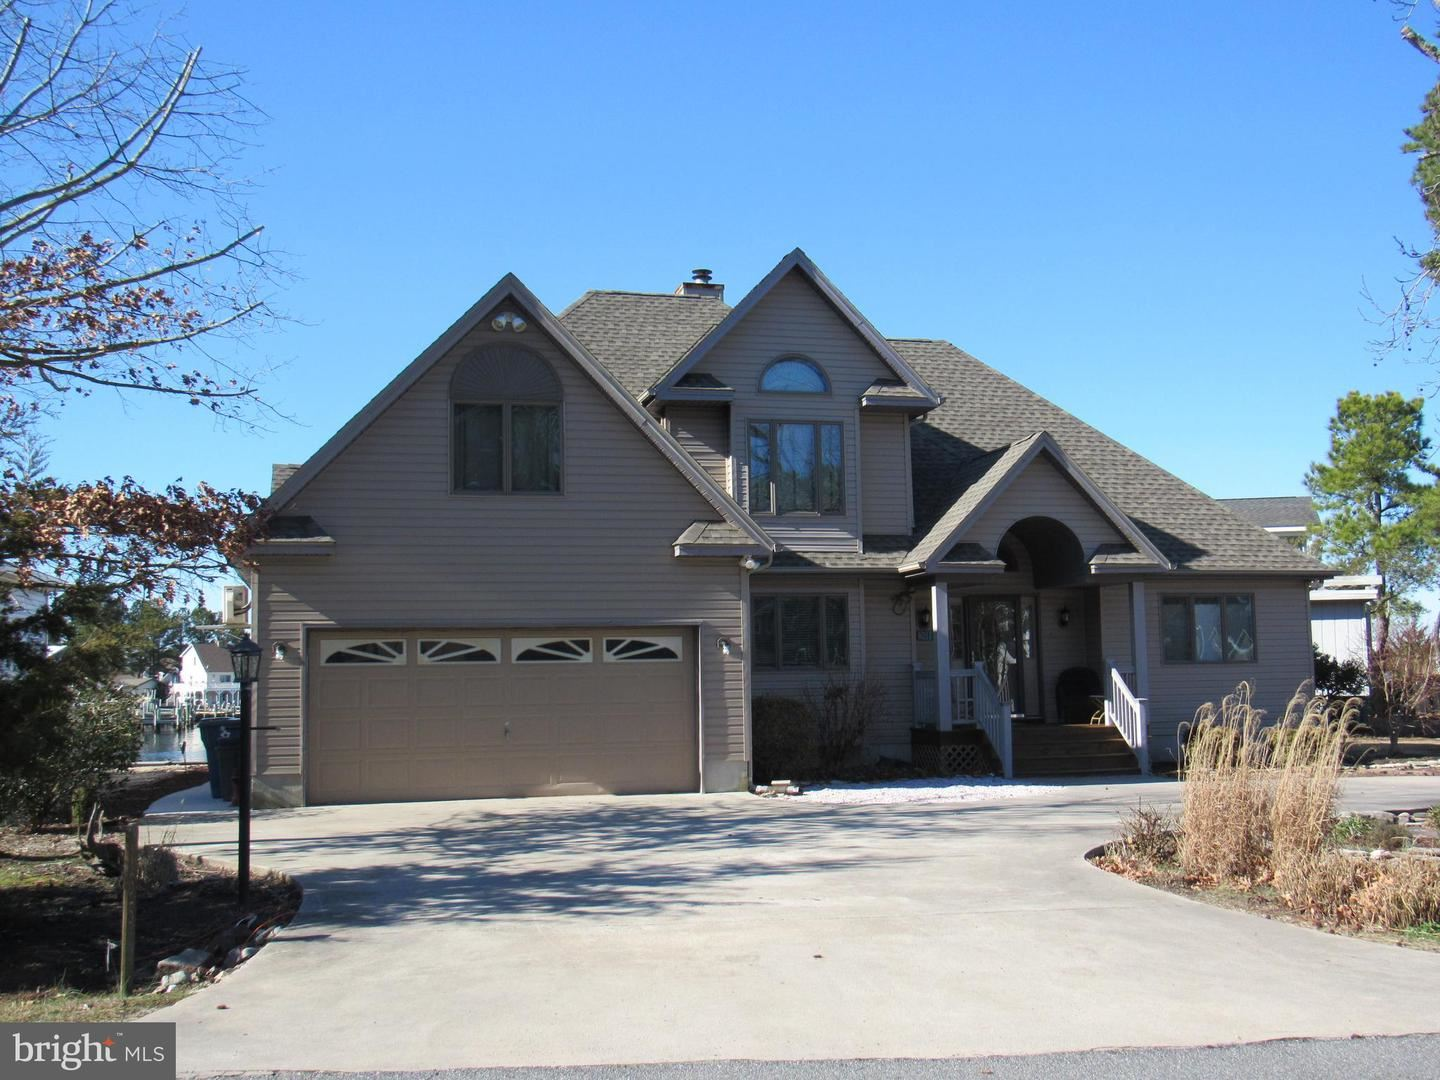 Photo for 165 TEAL CIR, OCEAN PINES, MD 21811 (MLS # MDWO111964)